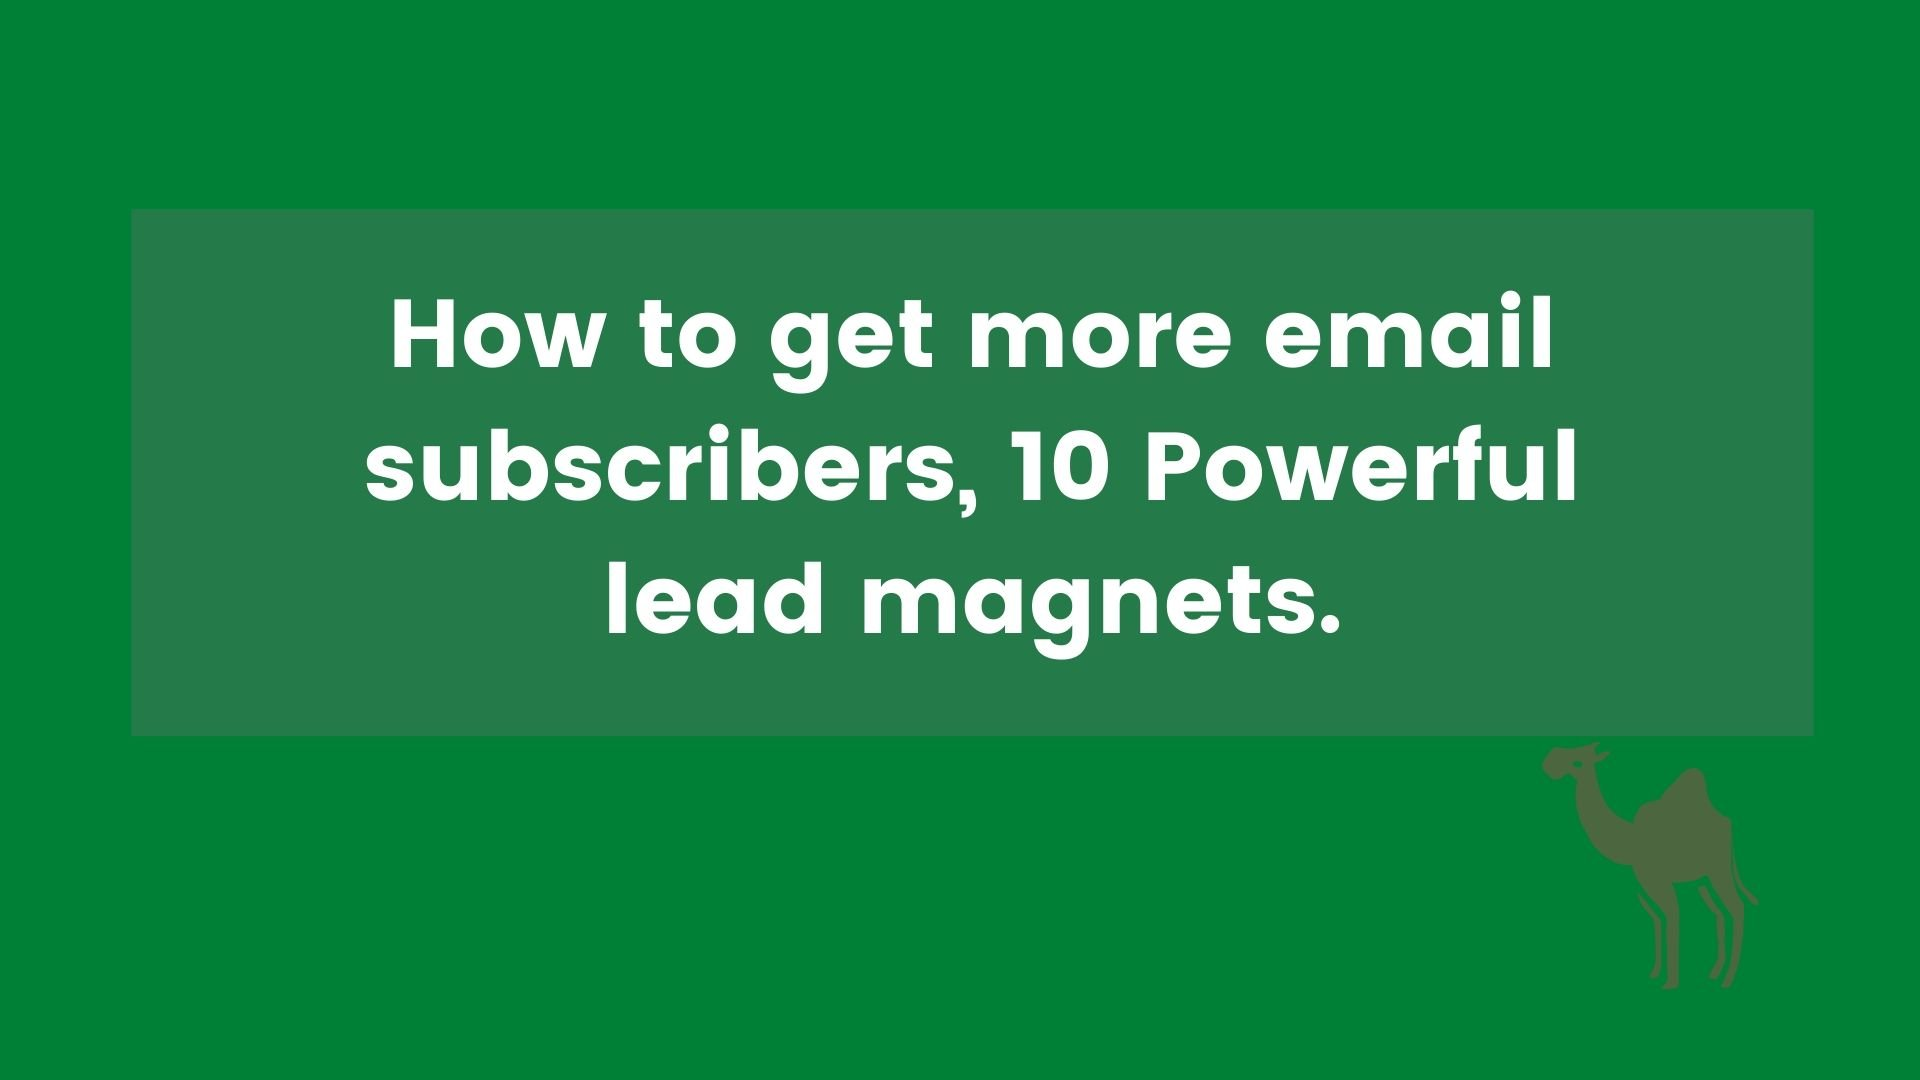 10 Powerful lead magnets.